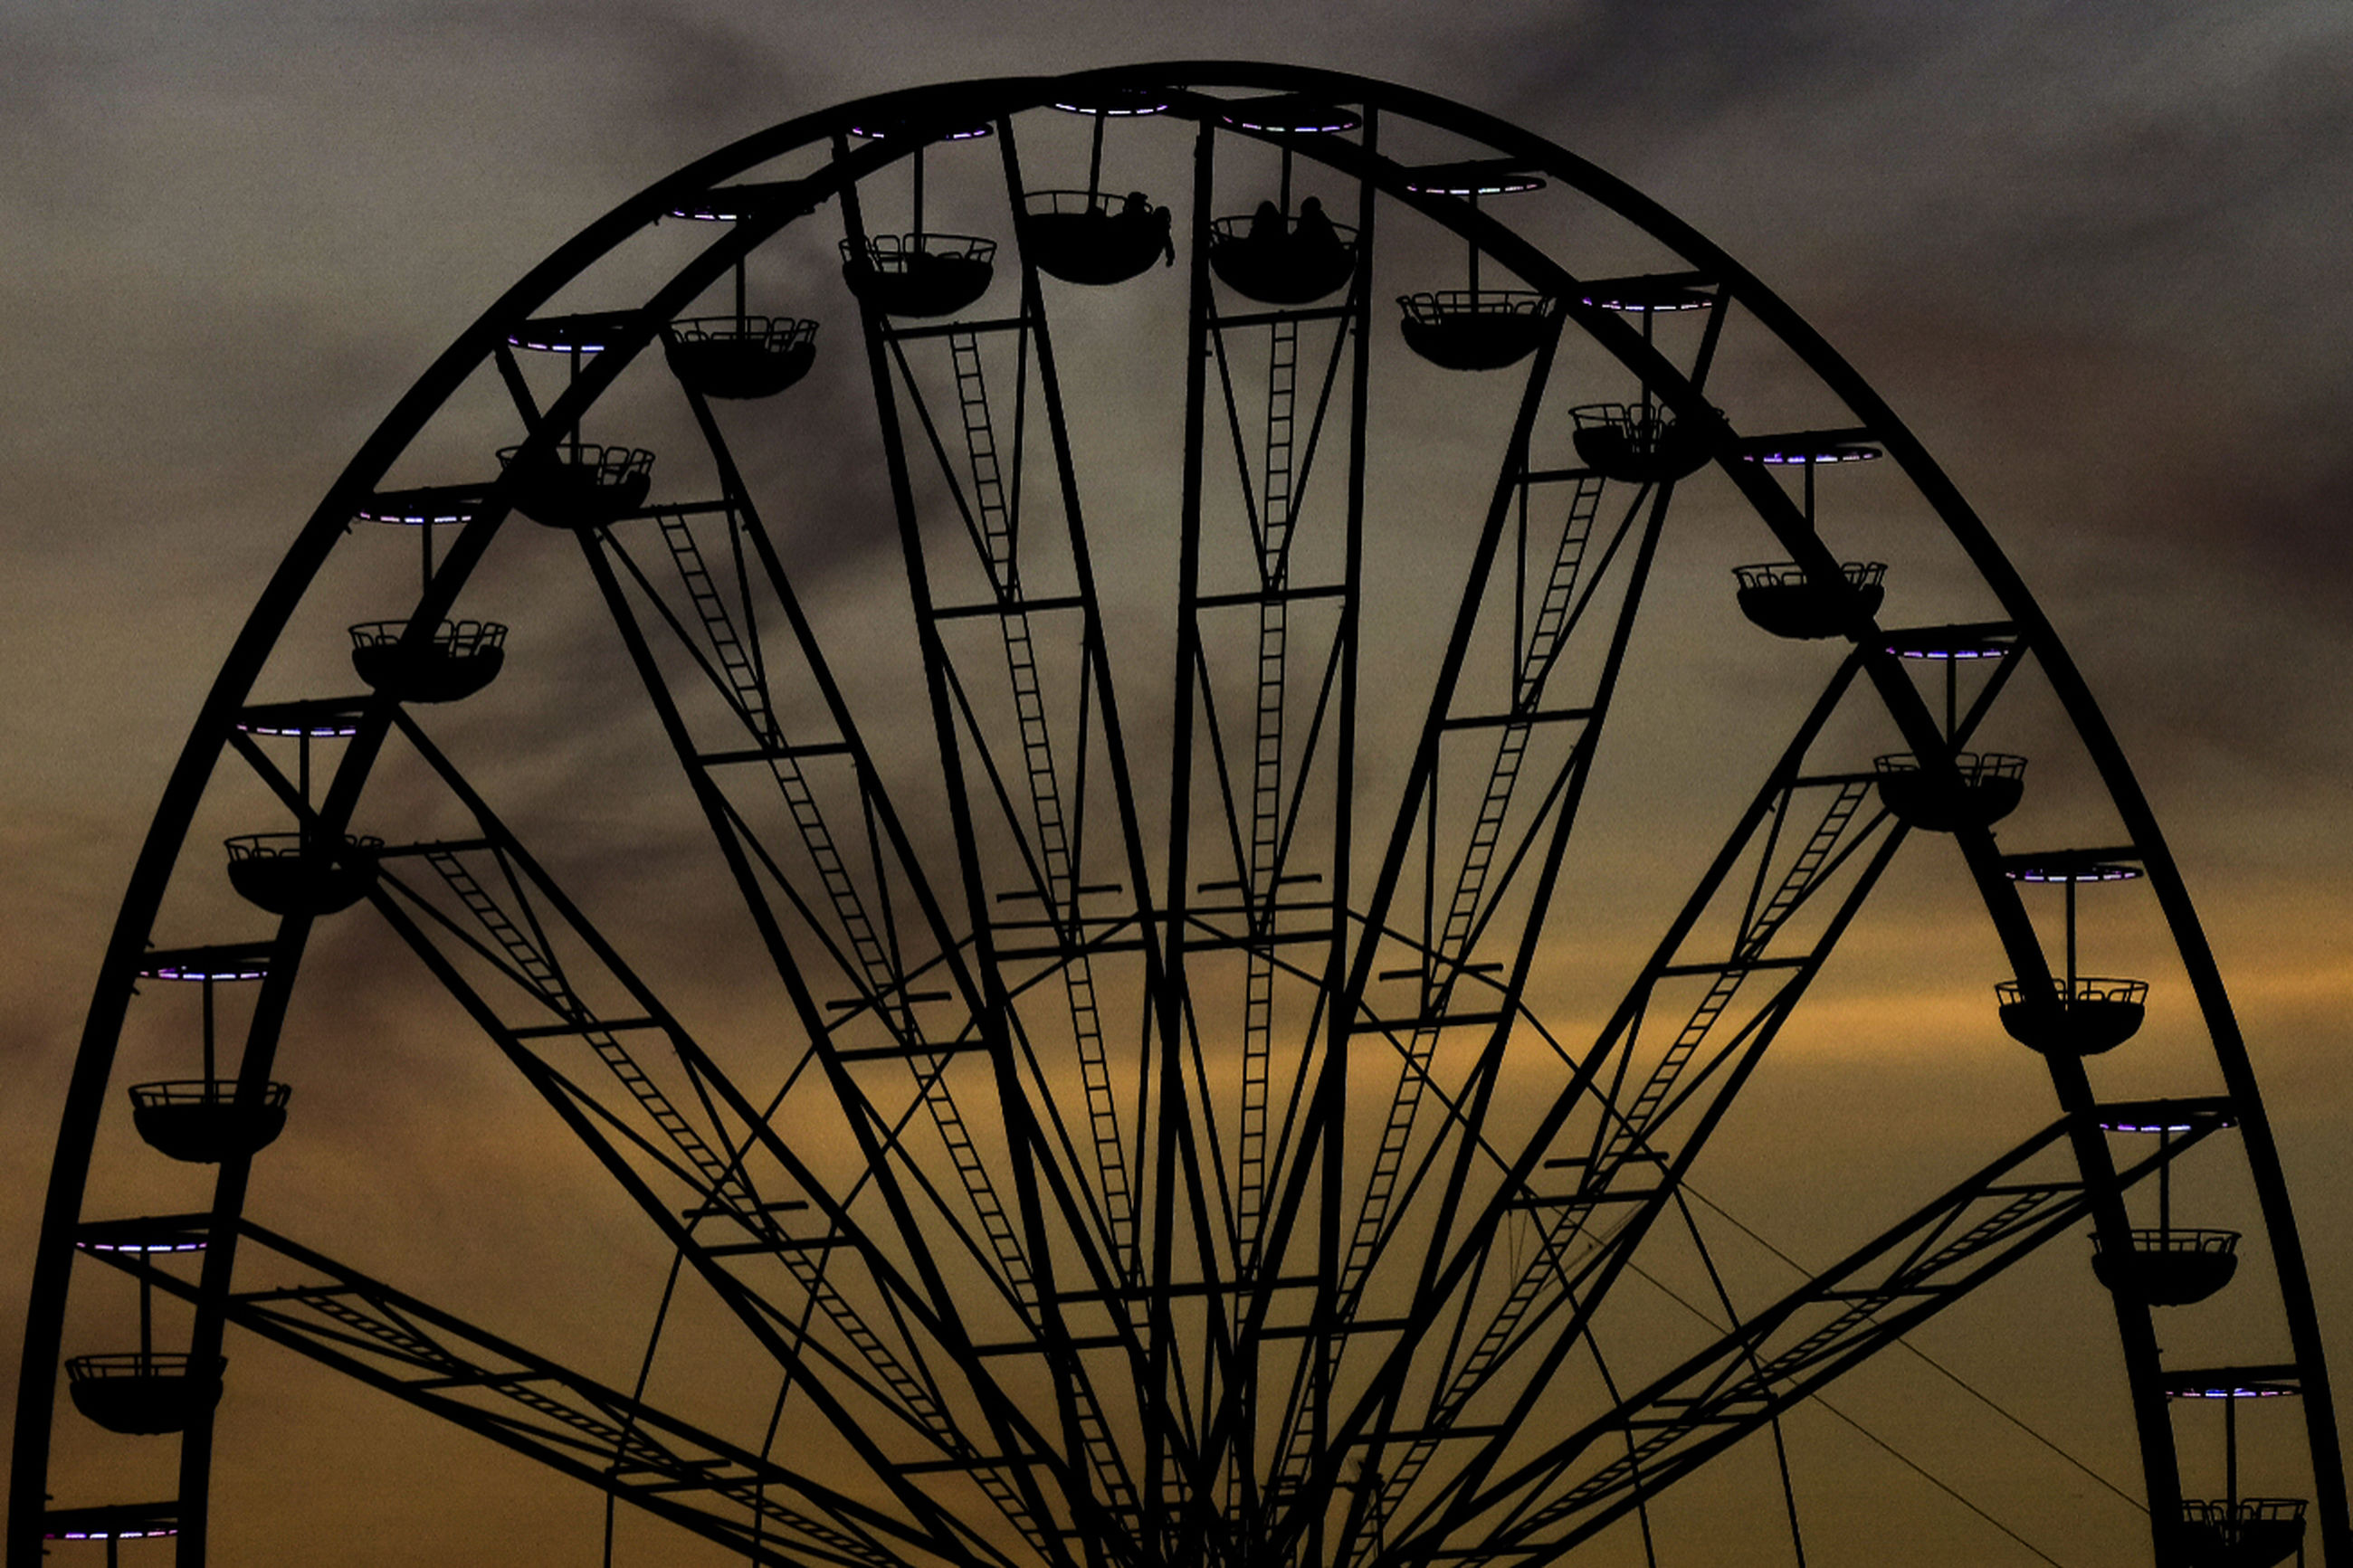 Low angle view of silhouette ferris wheel against cloudy sky during sunset